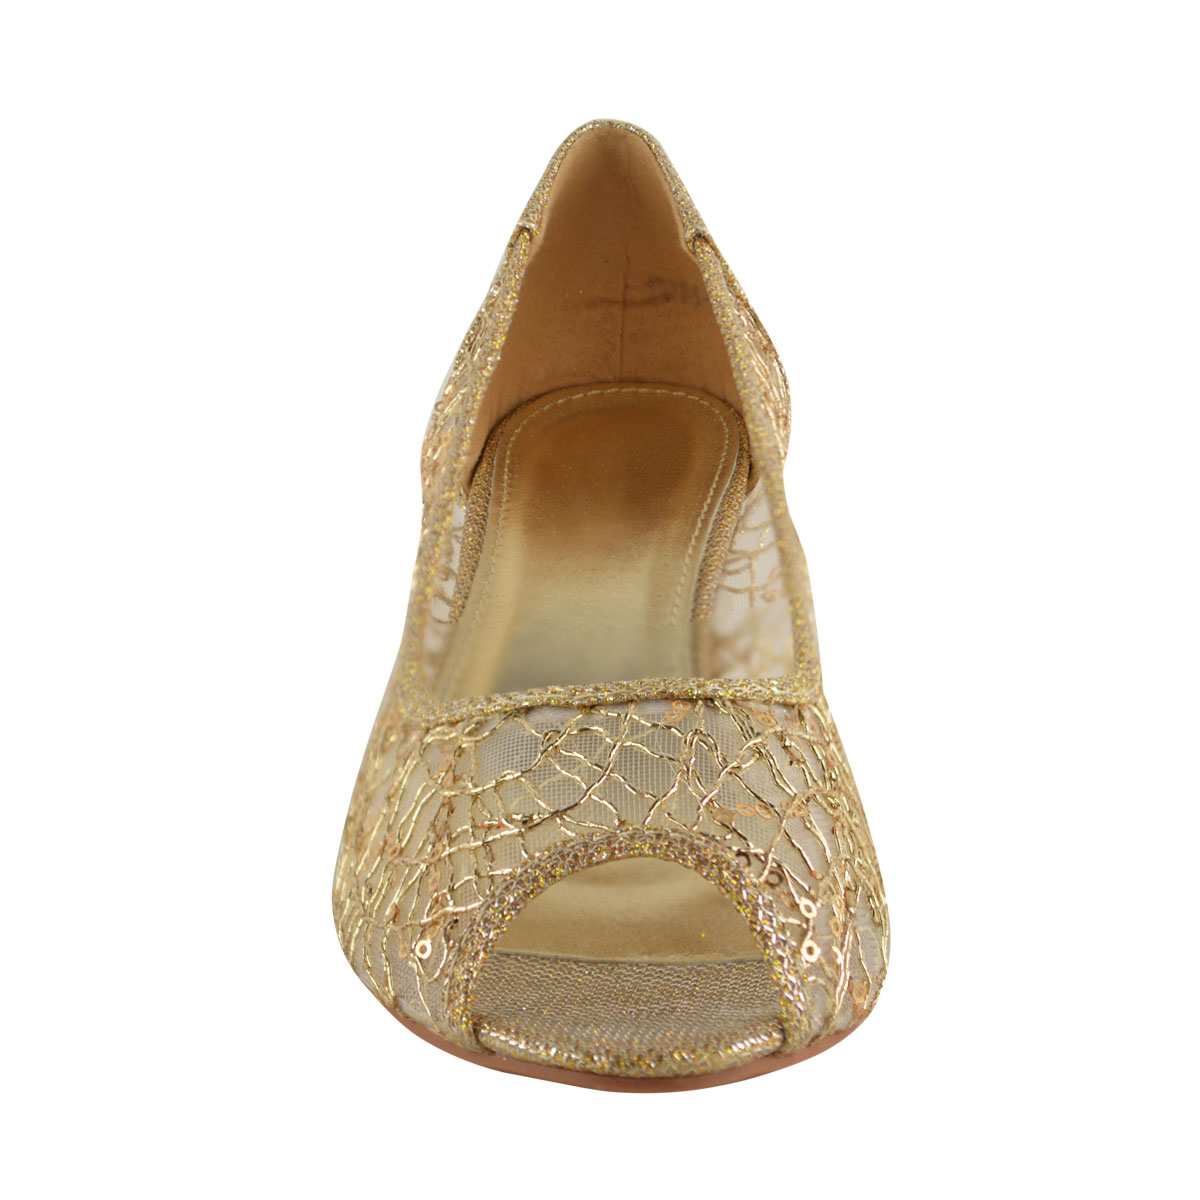 Wedge Heel Shoes For Wedding: LADIES WOMENS WEDGE HEEL LOW DIAMANTE WEDDING BRIDAL OPEN